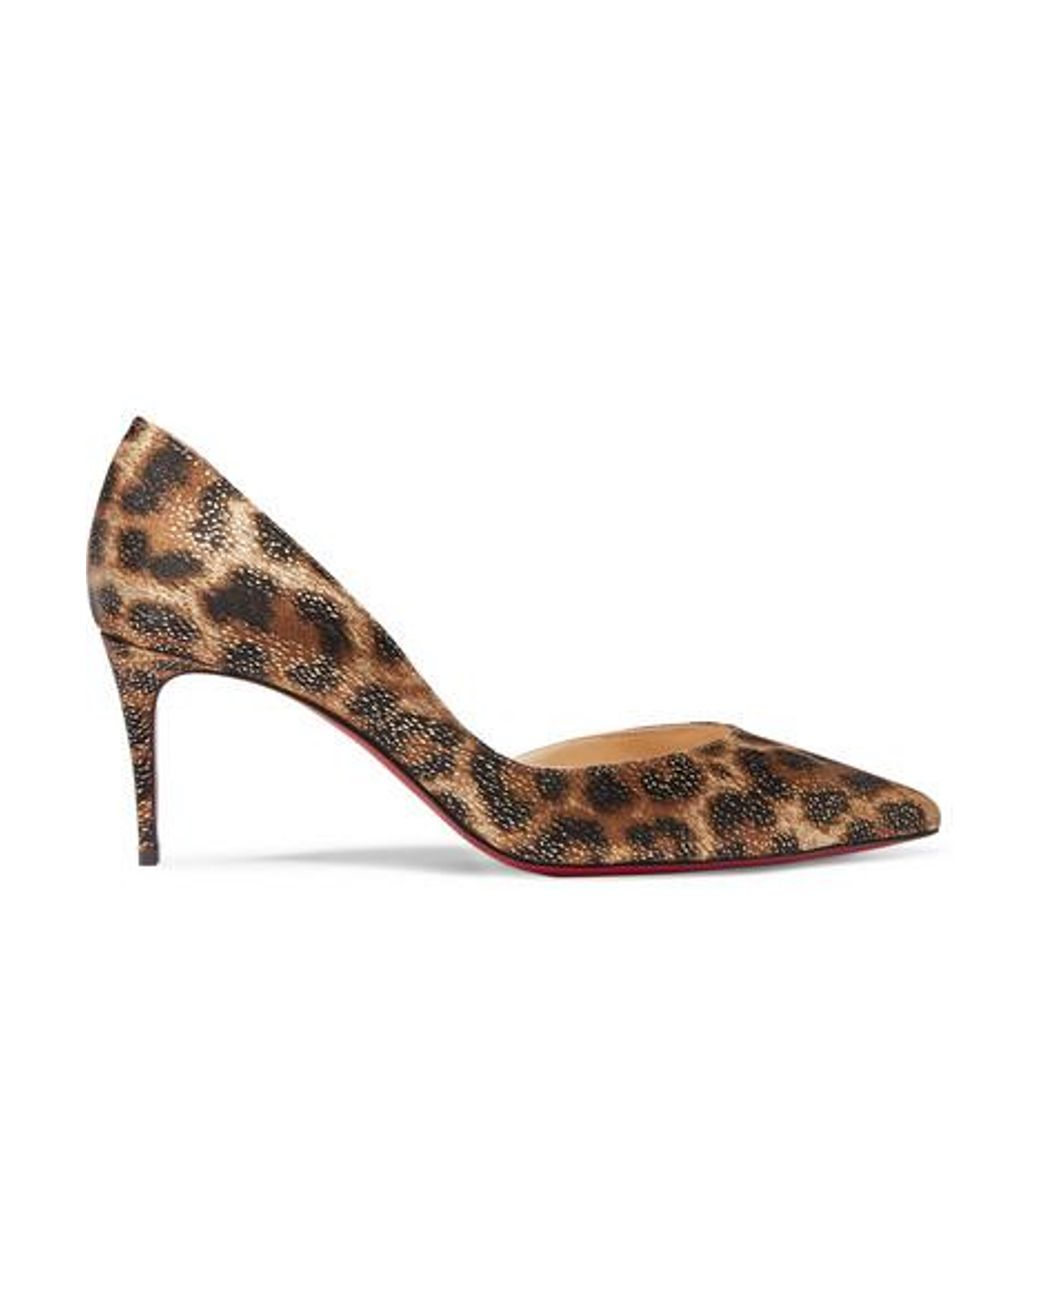 outlet store 22d2b 6ce1f Women's Brown Iriza 70 Metallic Leopard-print Satin Pumps